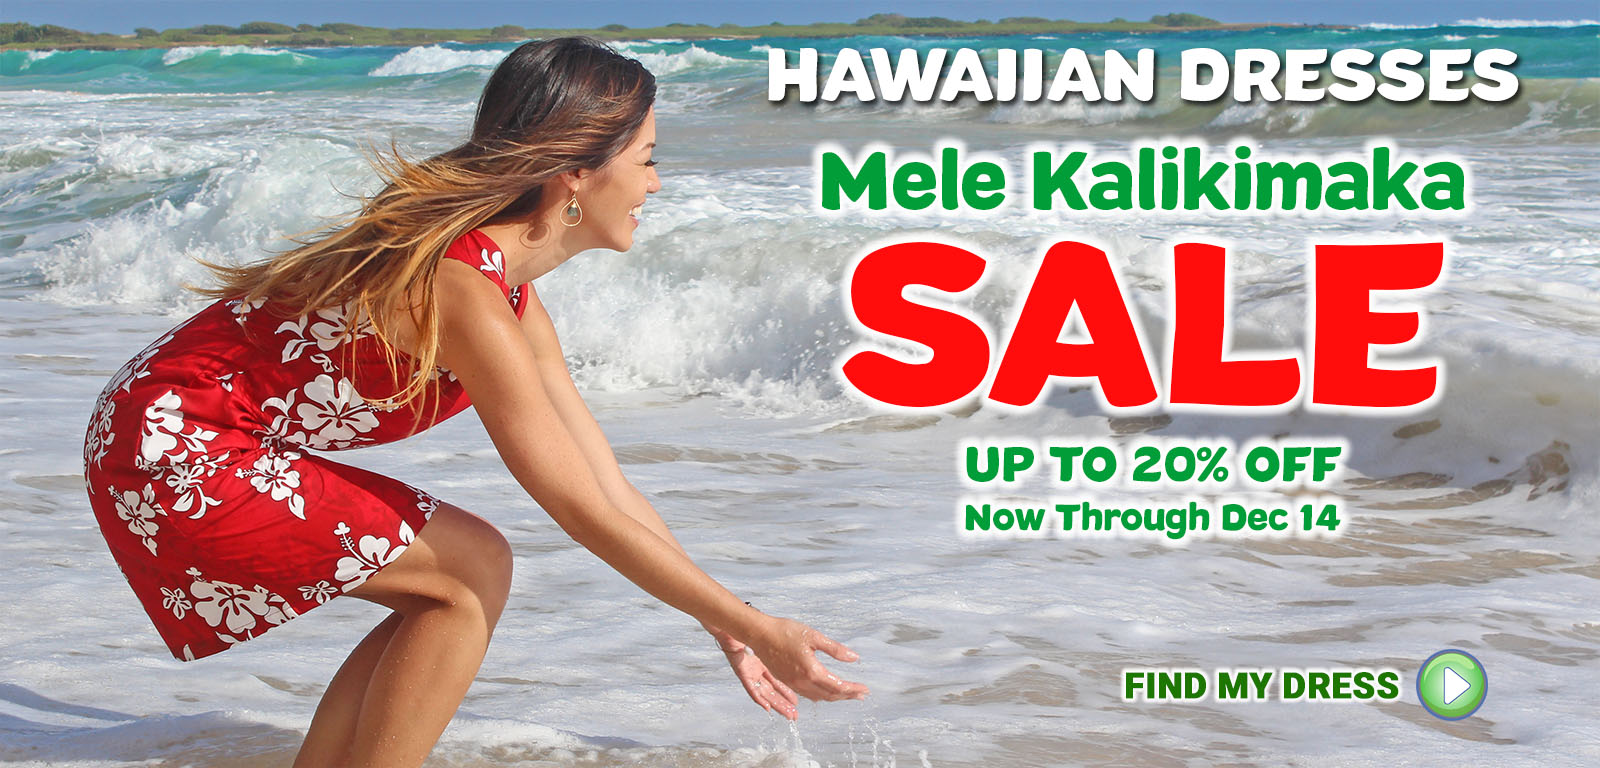 Hawaiian Dresses Mele Kalikimaka Sale